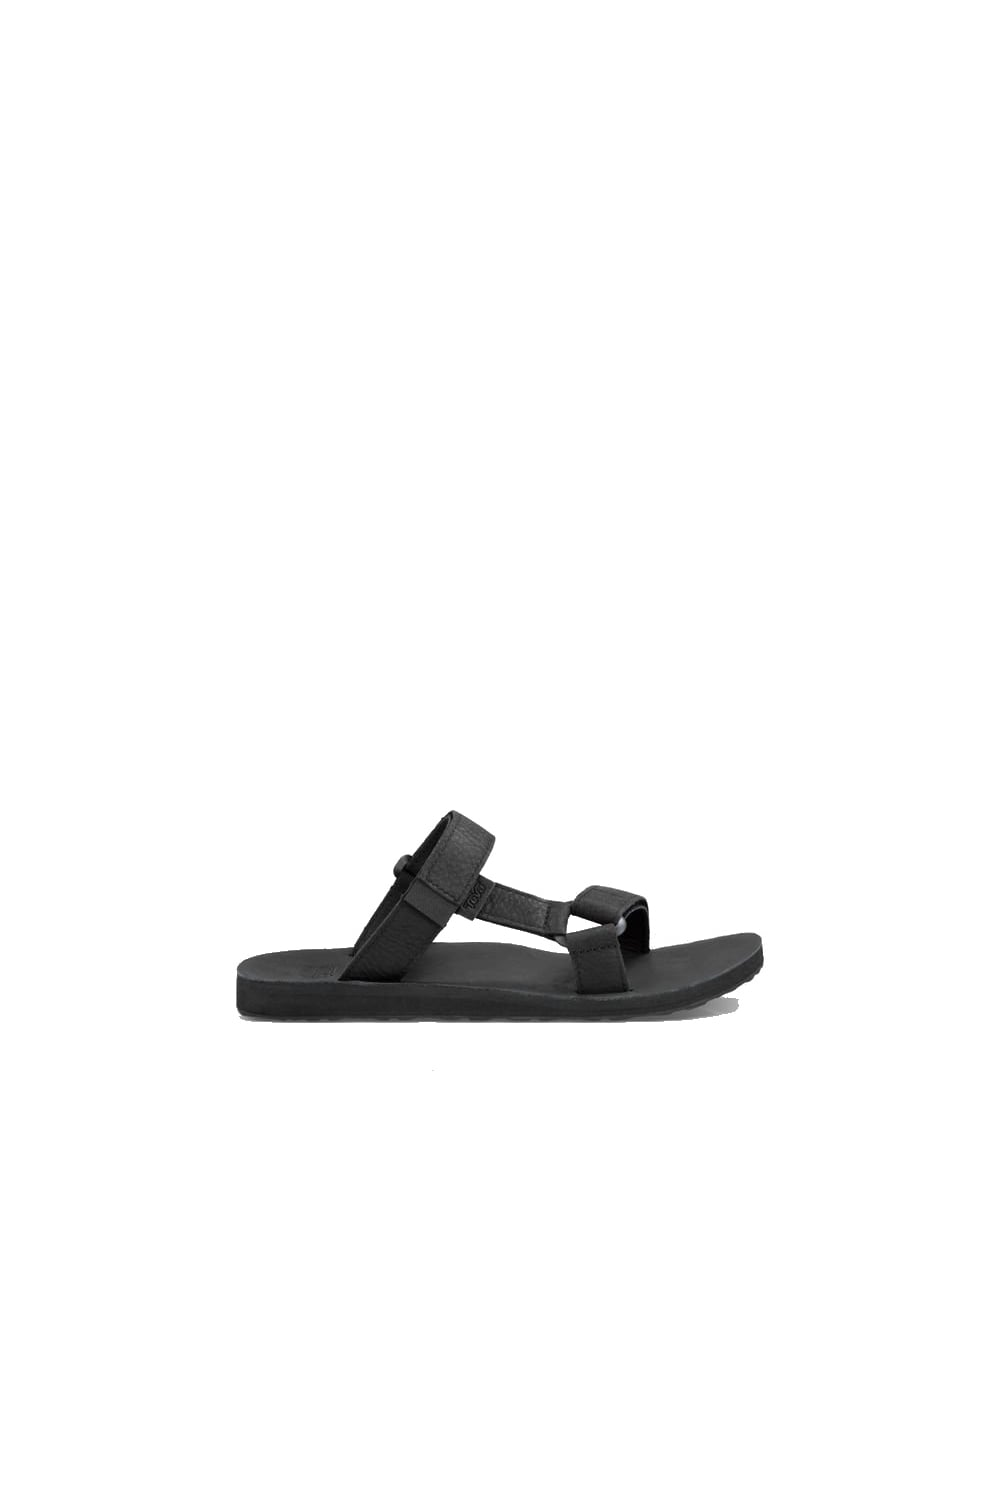 d79f5db059866c Teva Original Slide Leather (Black)